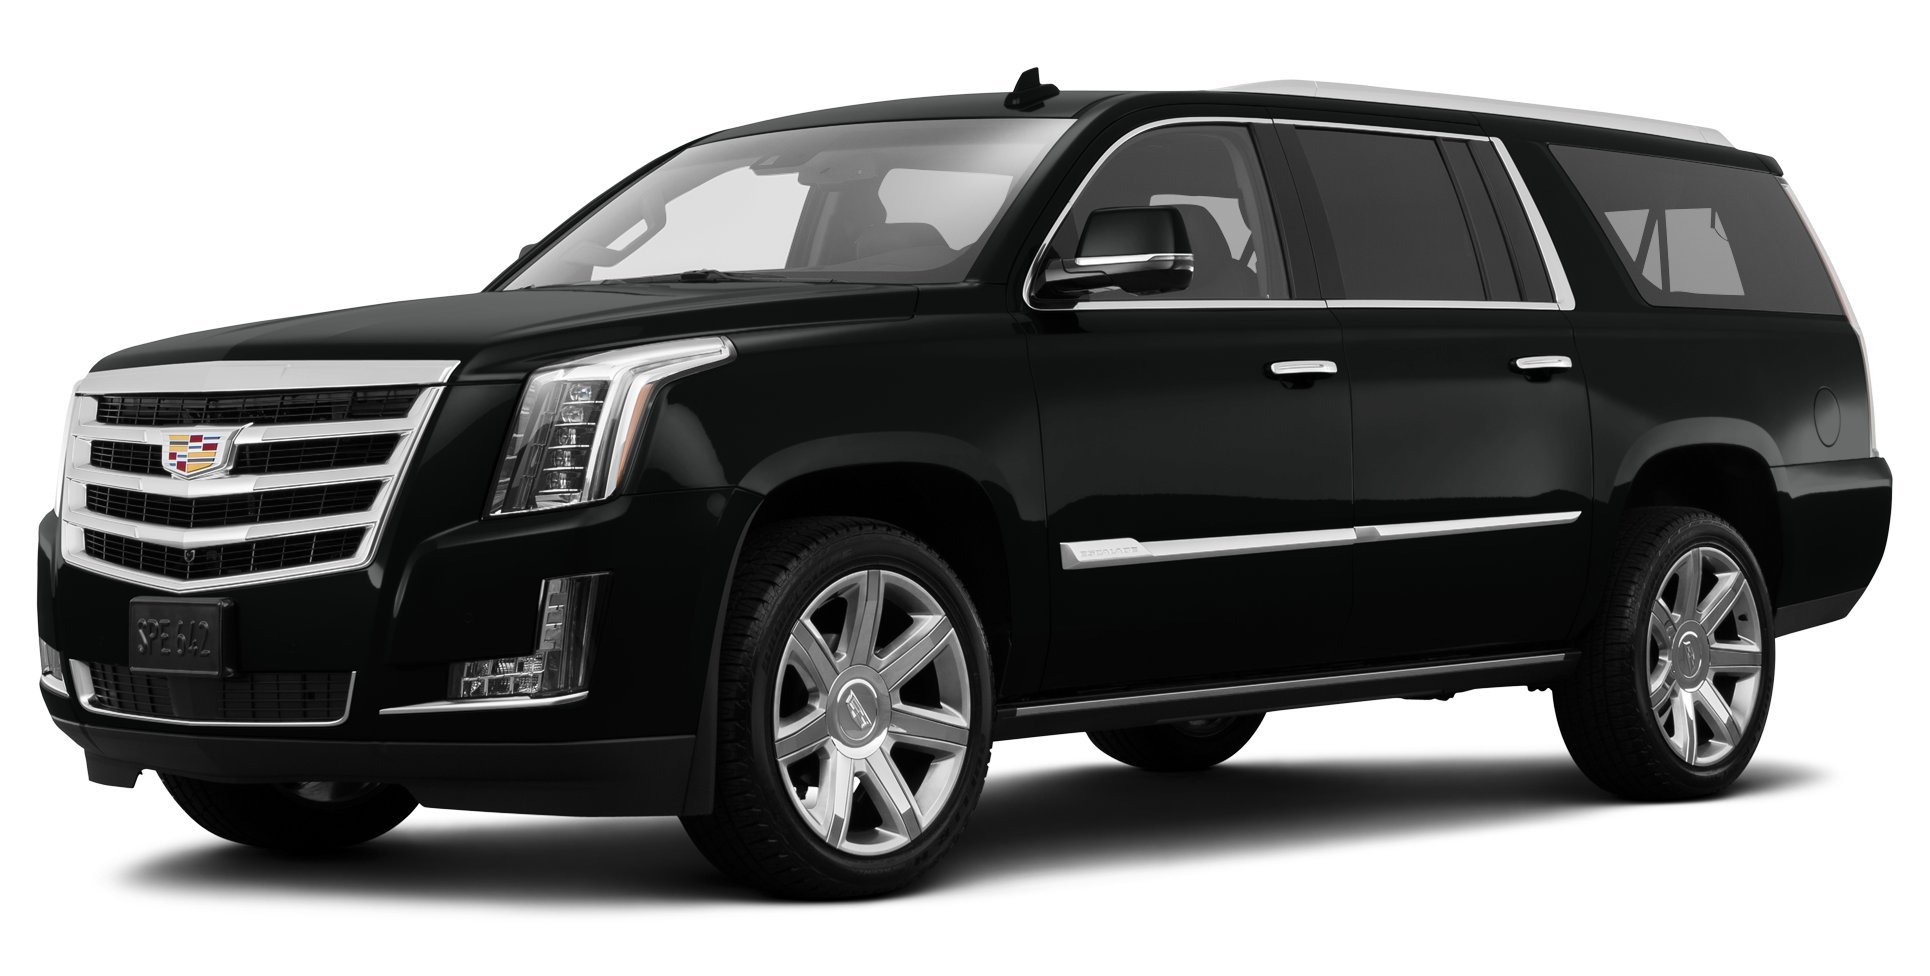 2017 cadillac escalade esv reviews images and specs vehicles. Black Bedroom Furniture Sets. Home Design Ideas